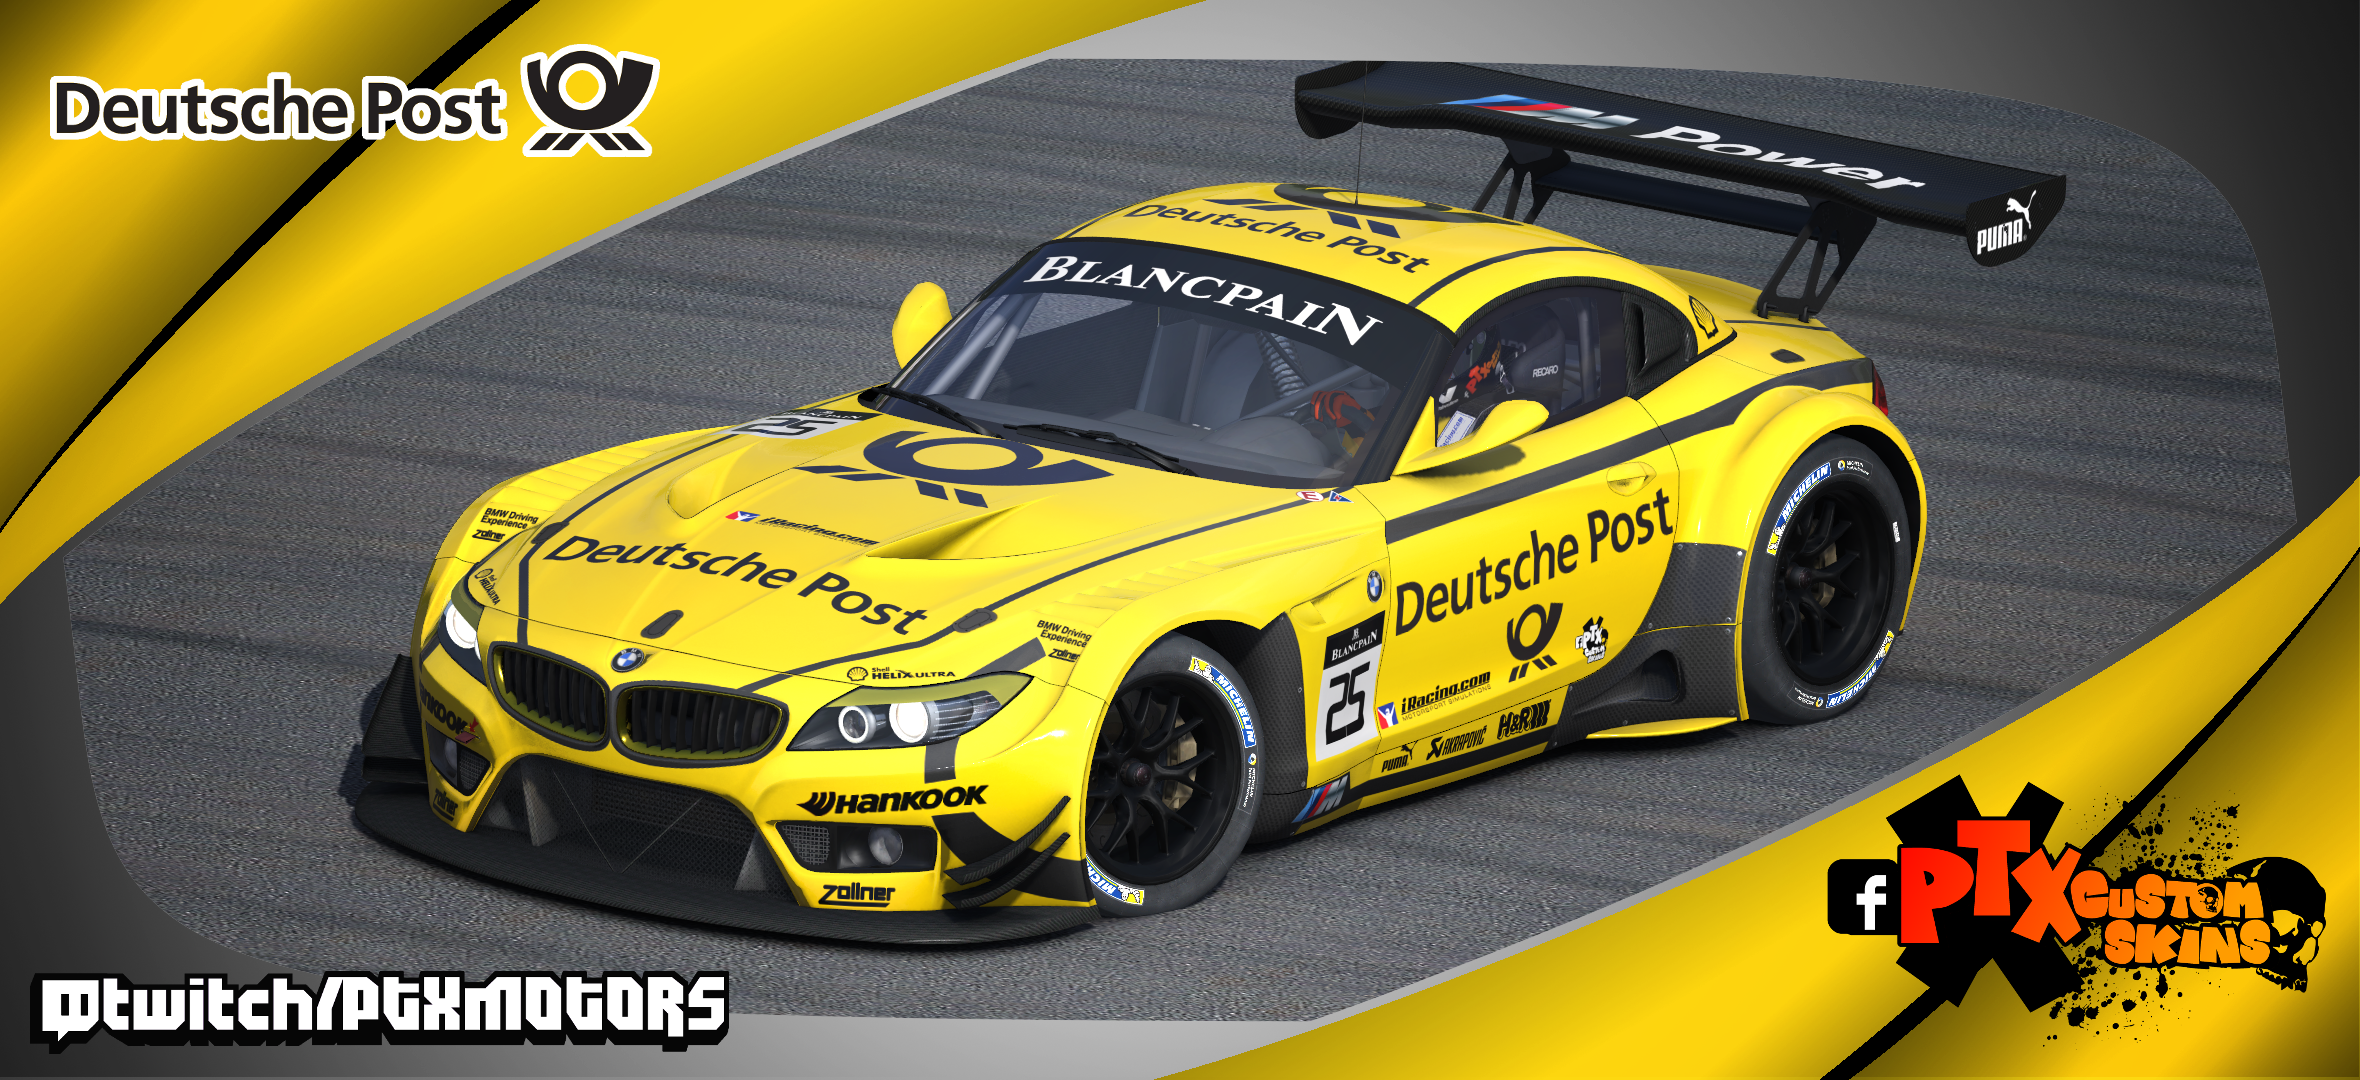 Deutsche Post Dtm Livery Bmw Z4 Gt3 By Samuel Almeida